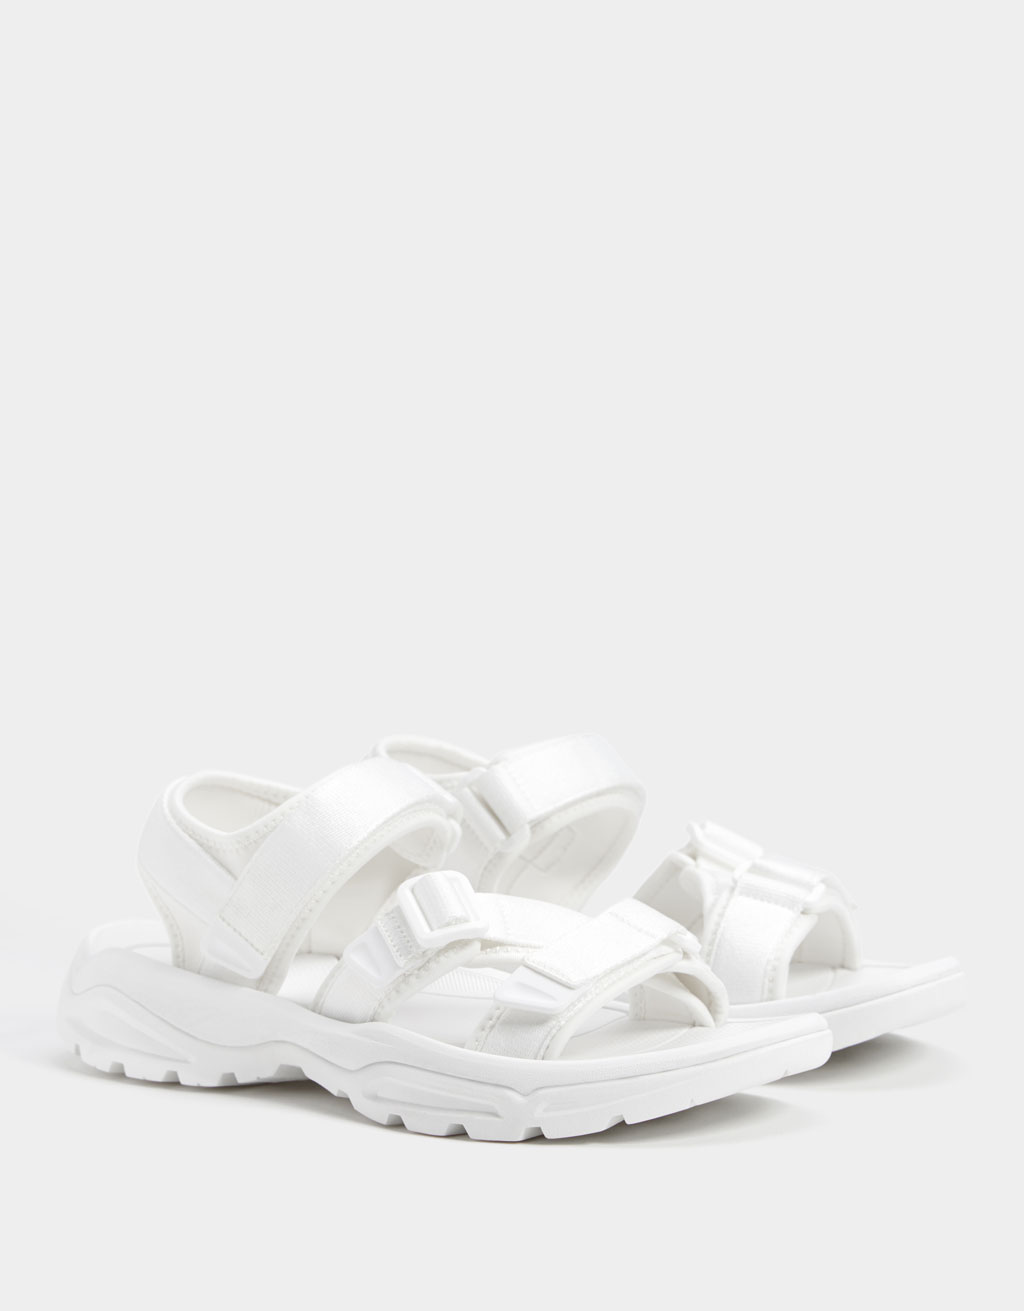 Sporty monochrome sandals